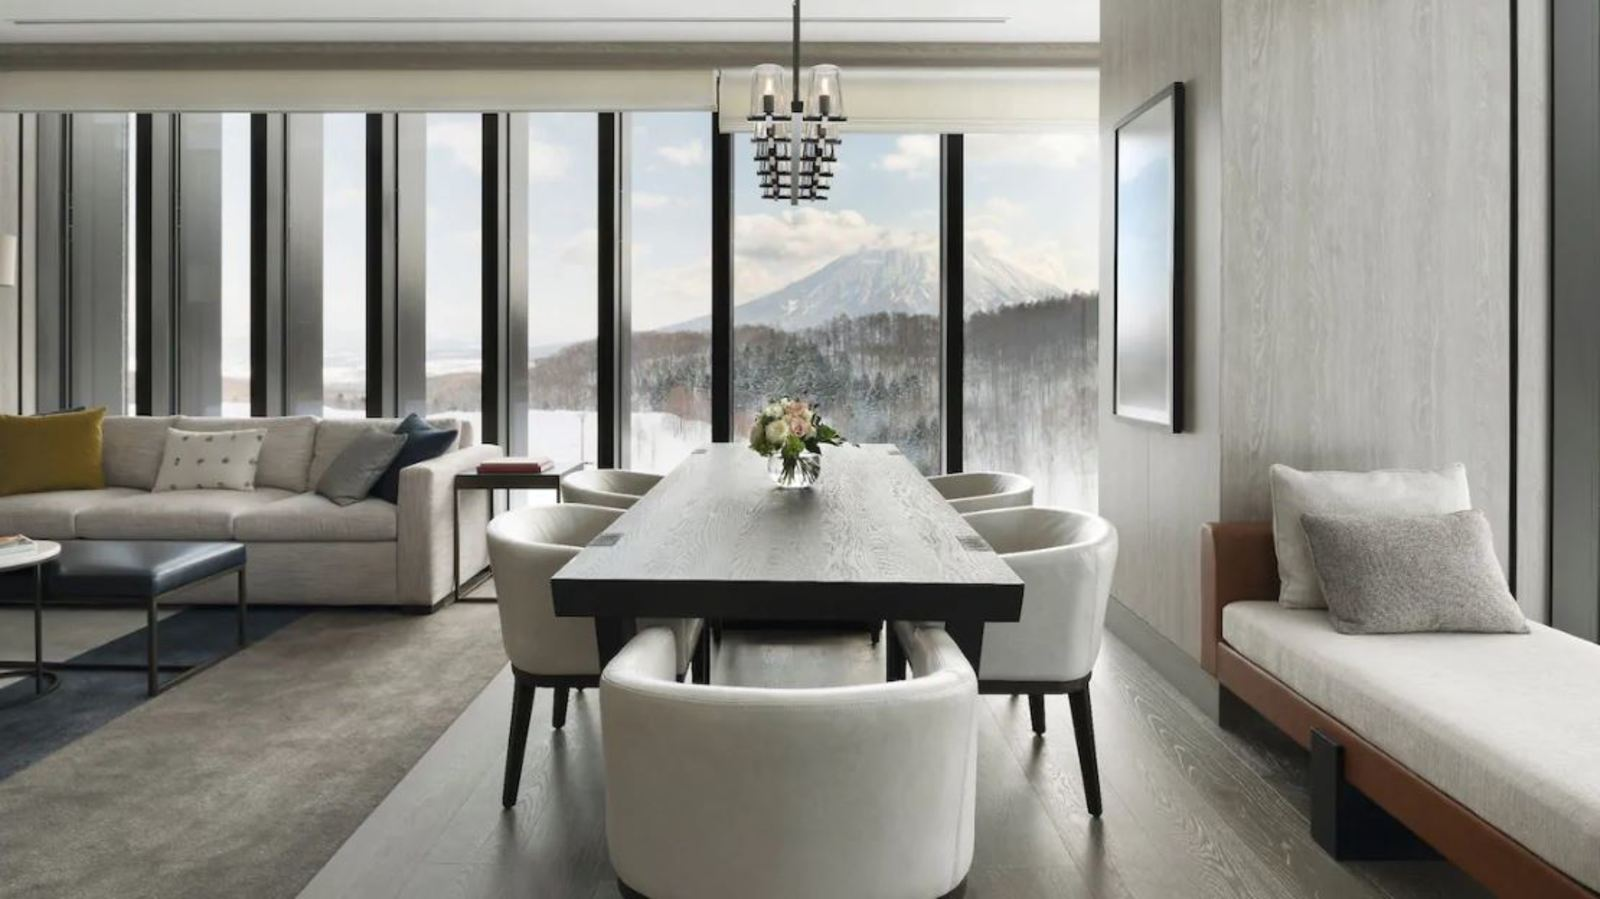 park hyatt niseko hanazono hotel accommodation dining living room